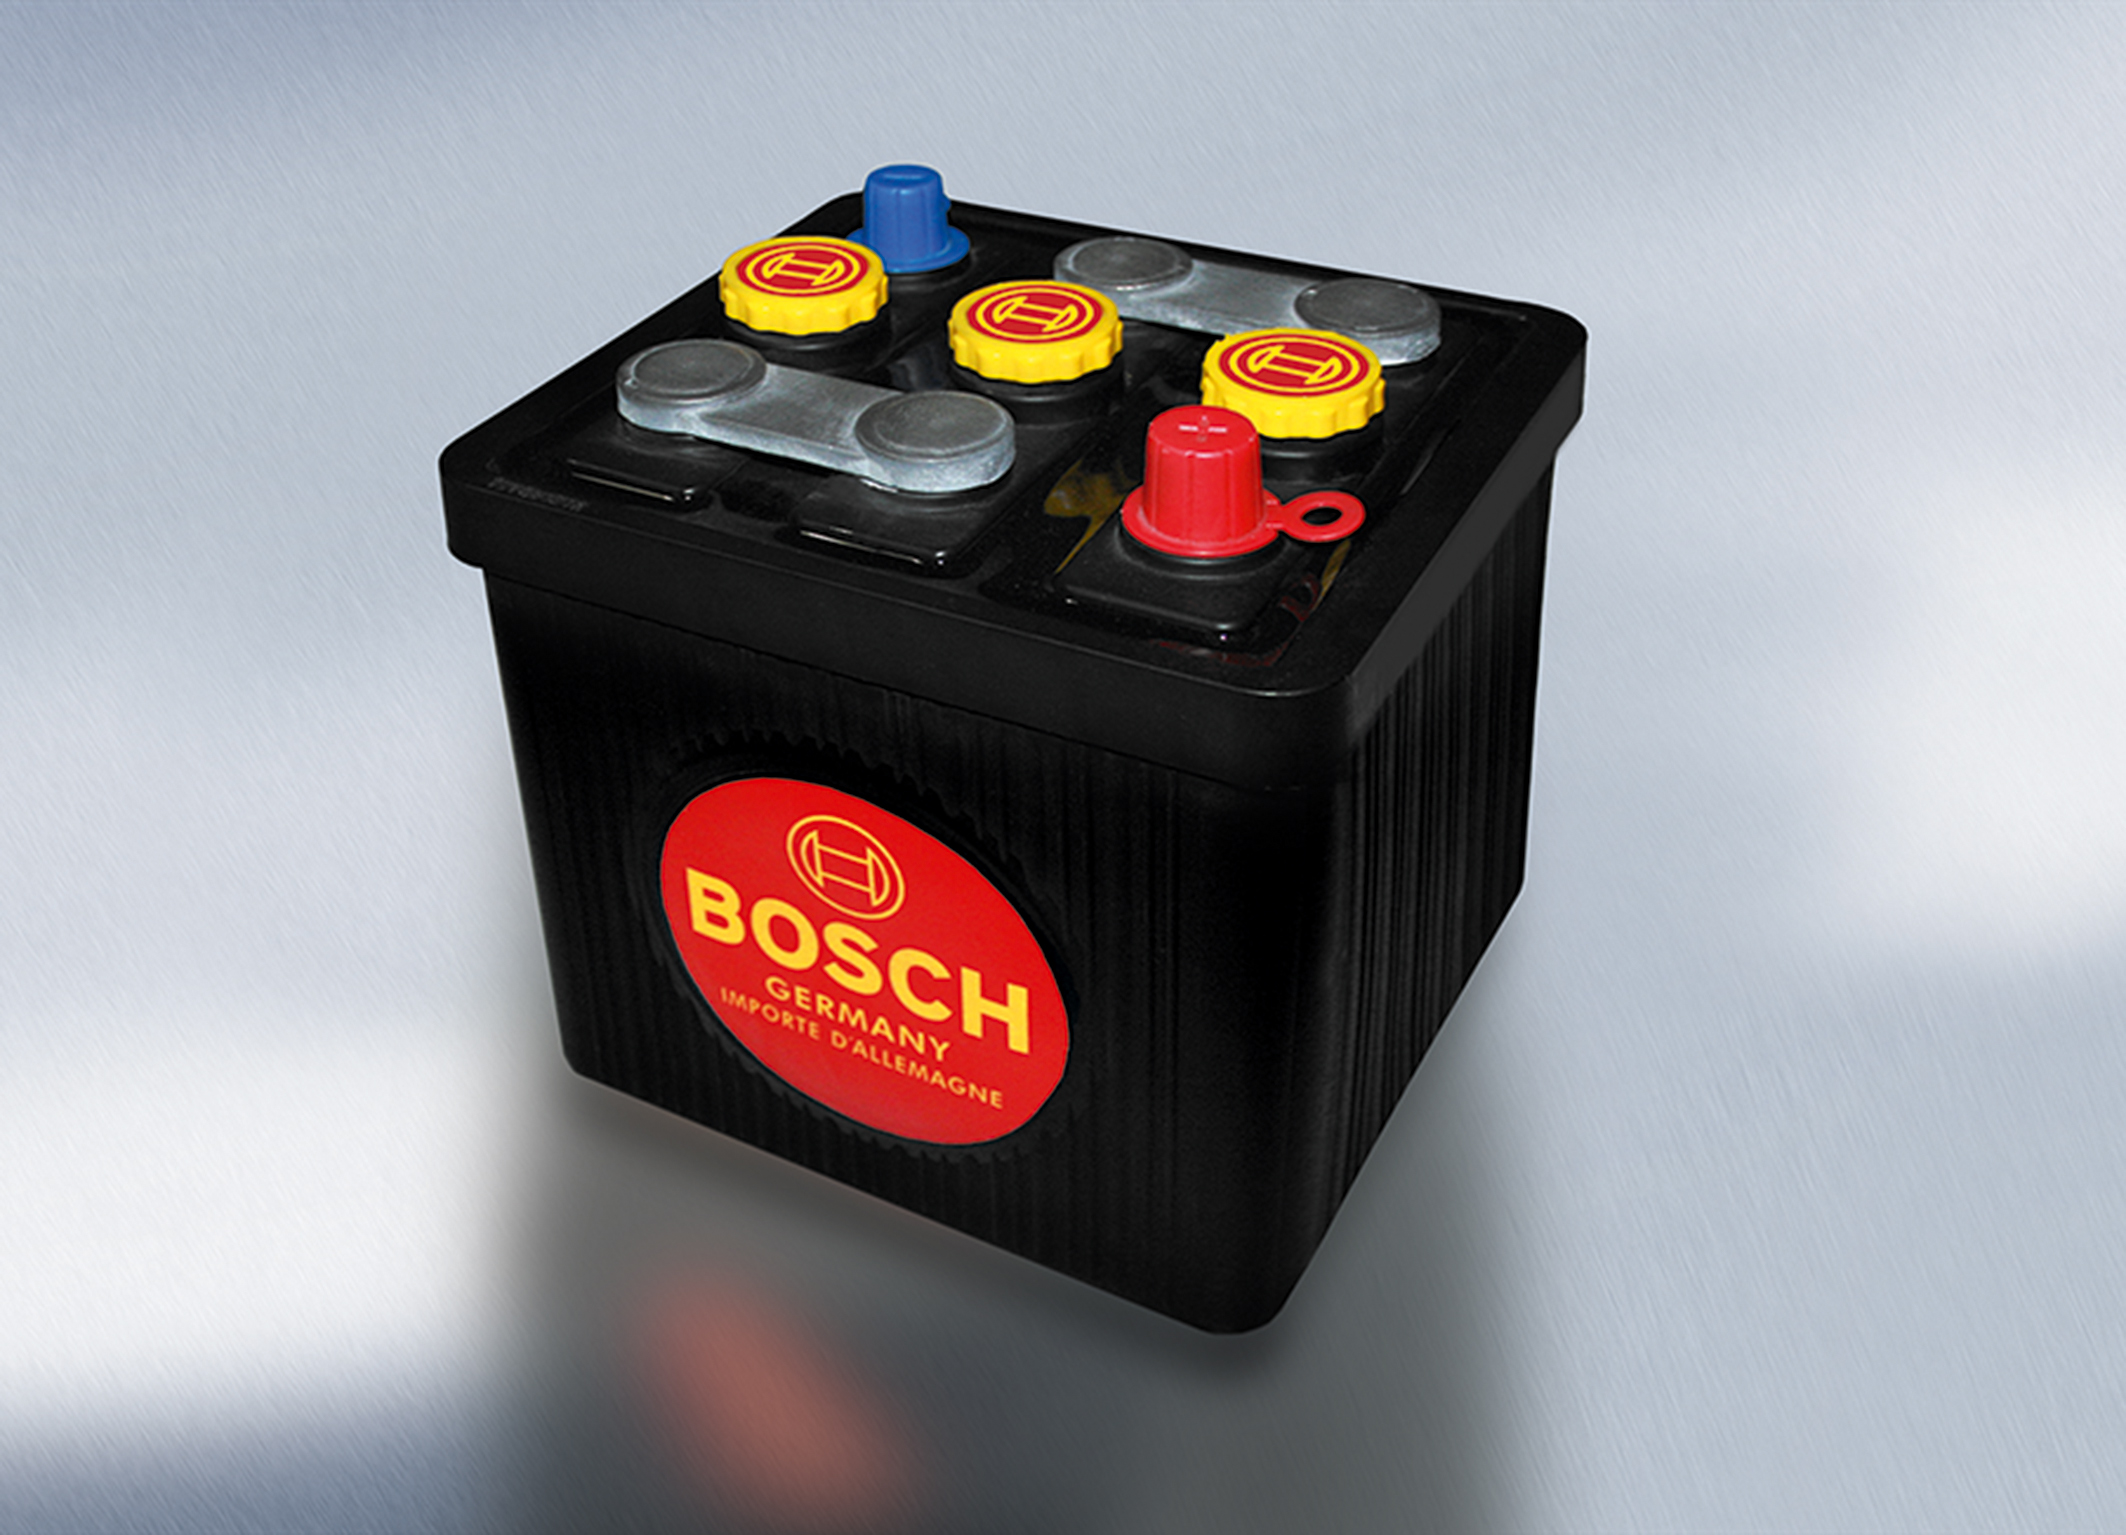 A range of training courses on classic Bosch systems provides retro and classic car fans who have an interest in technology with the opportunity to gain practical knowledge from the manufacturer.